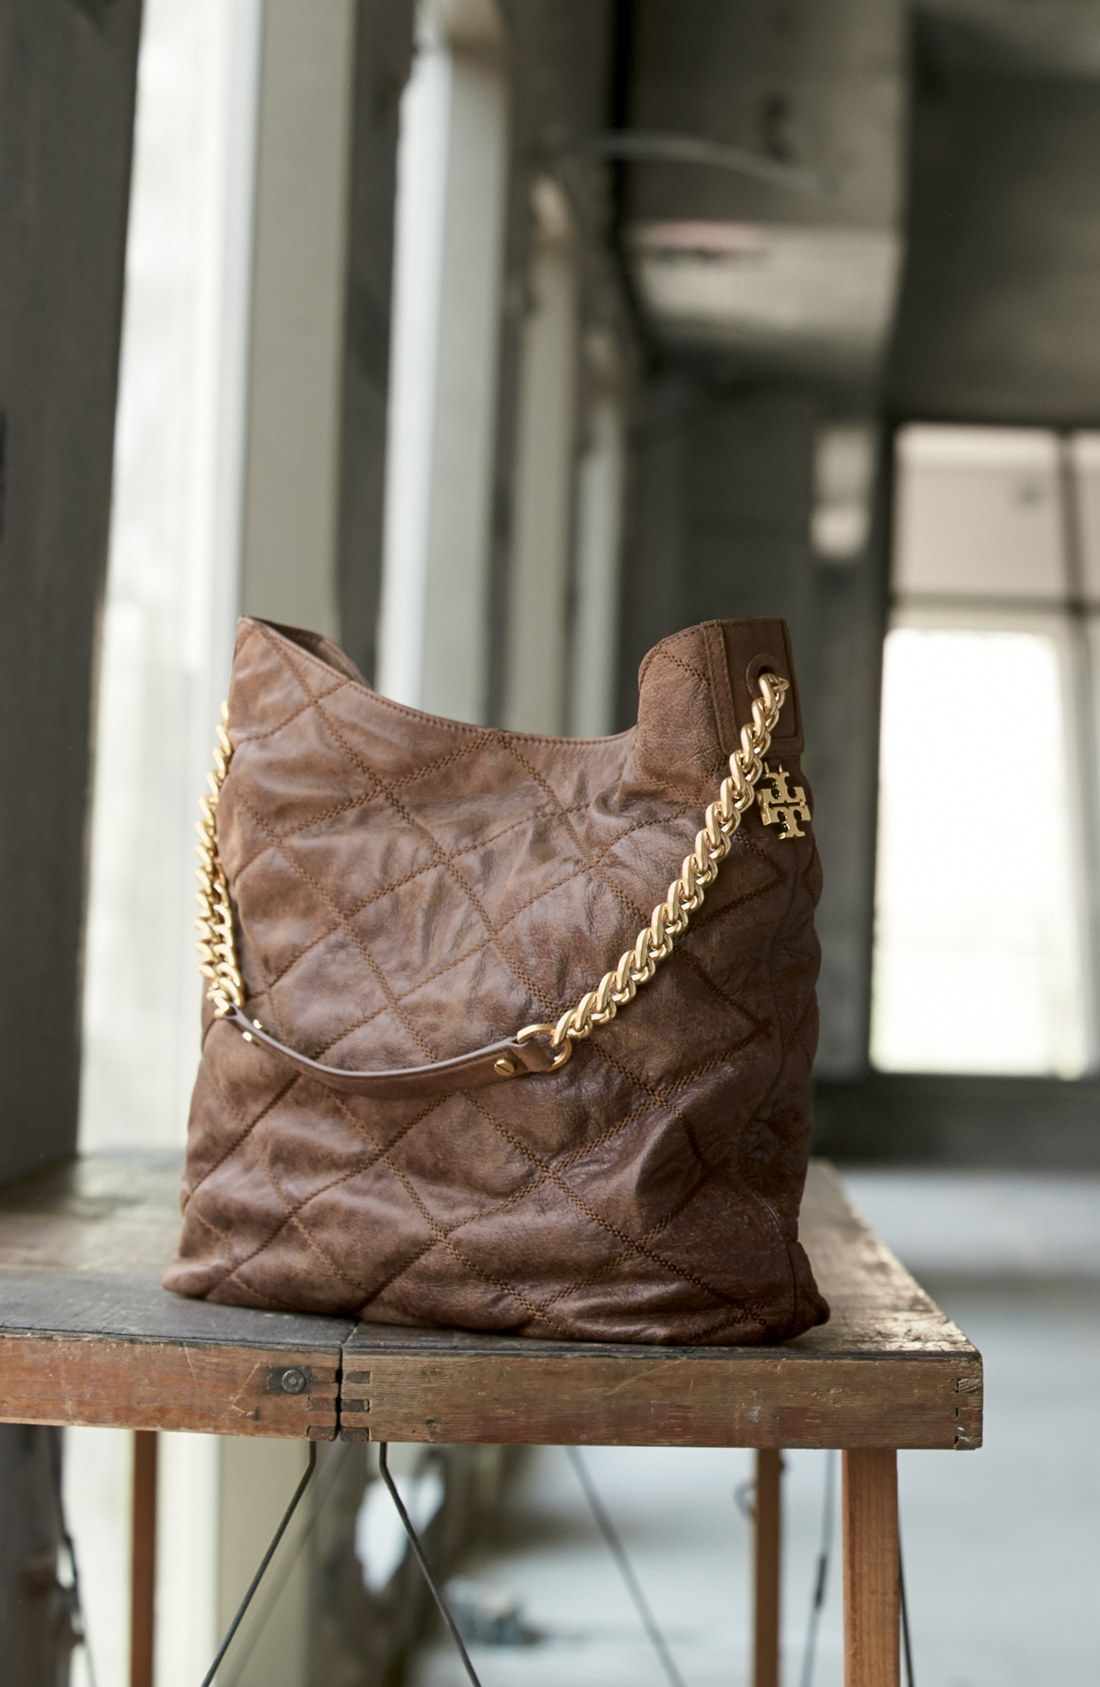 Spotted this vintage-chic Tory Burch hobo. So gorgeous!